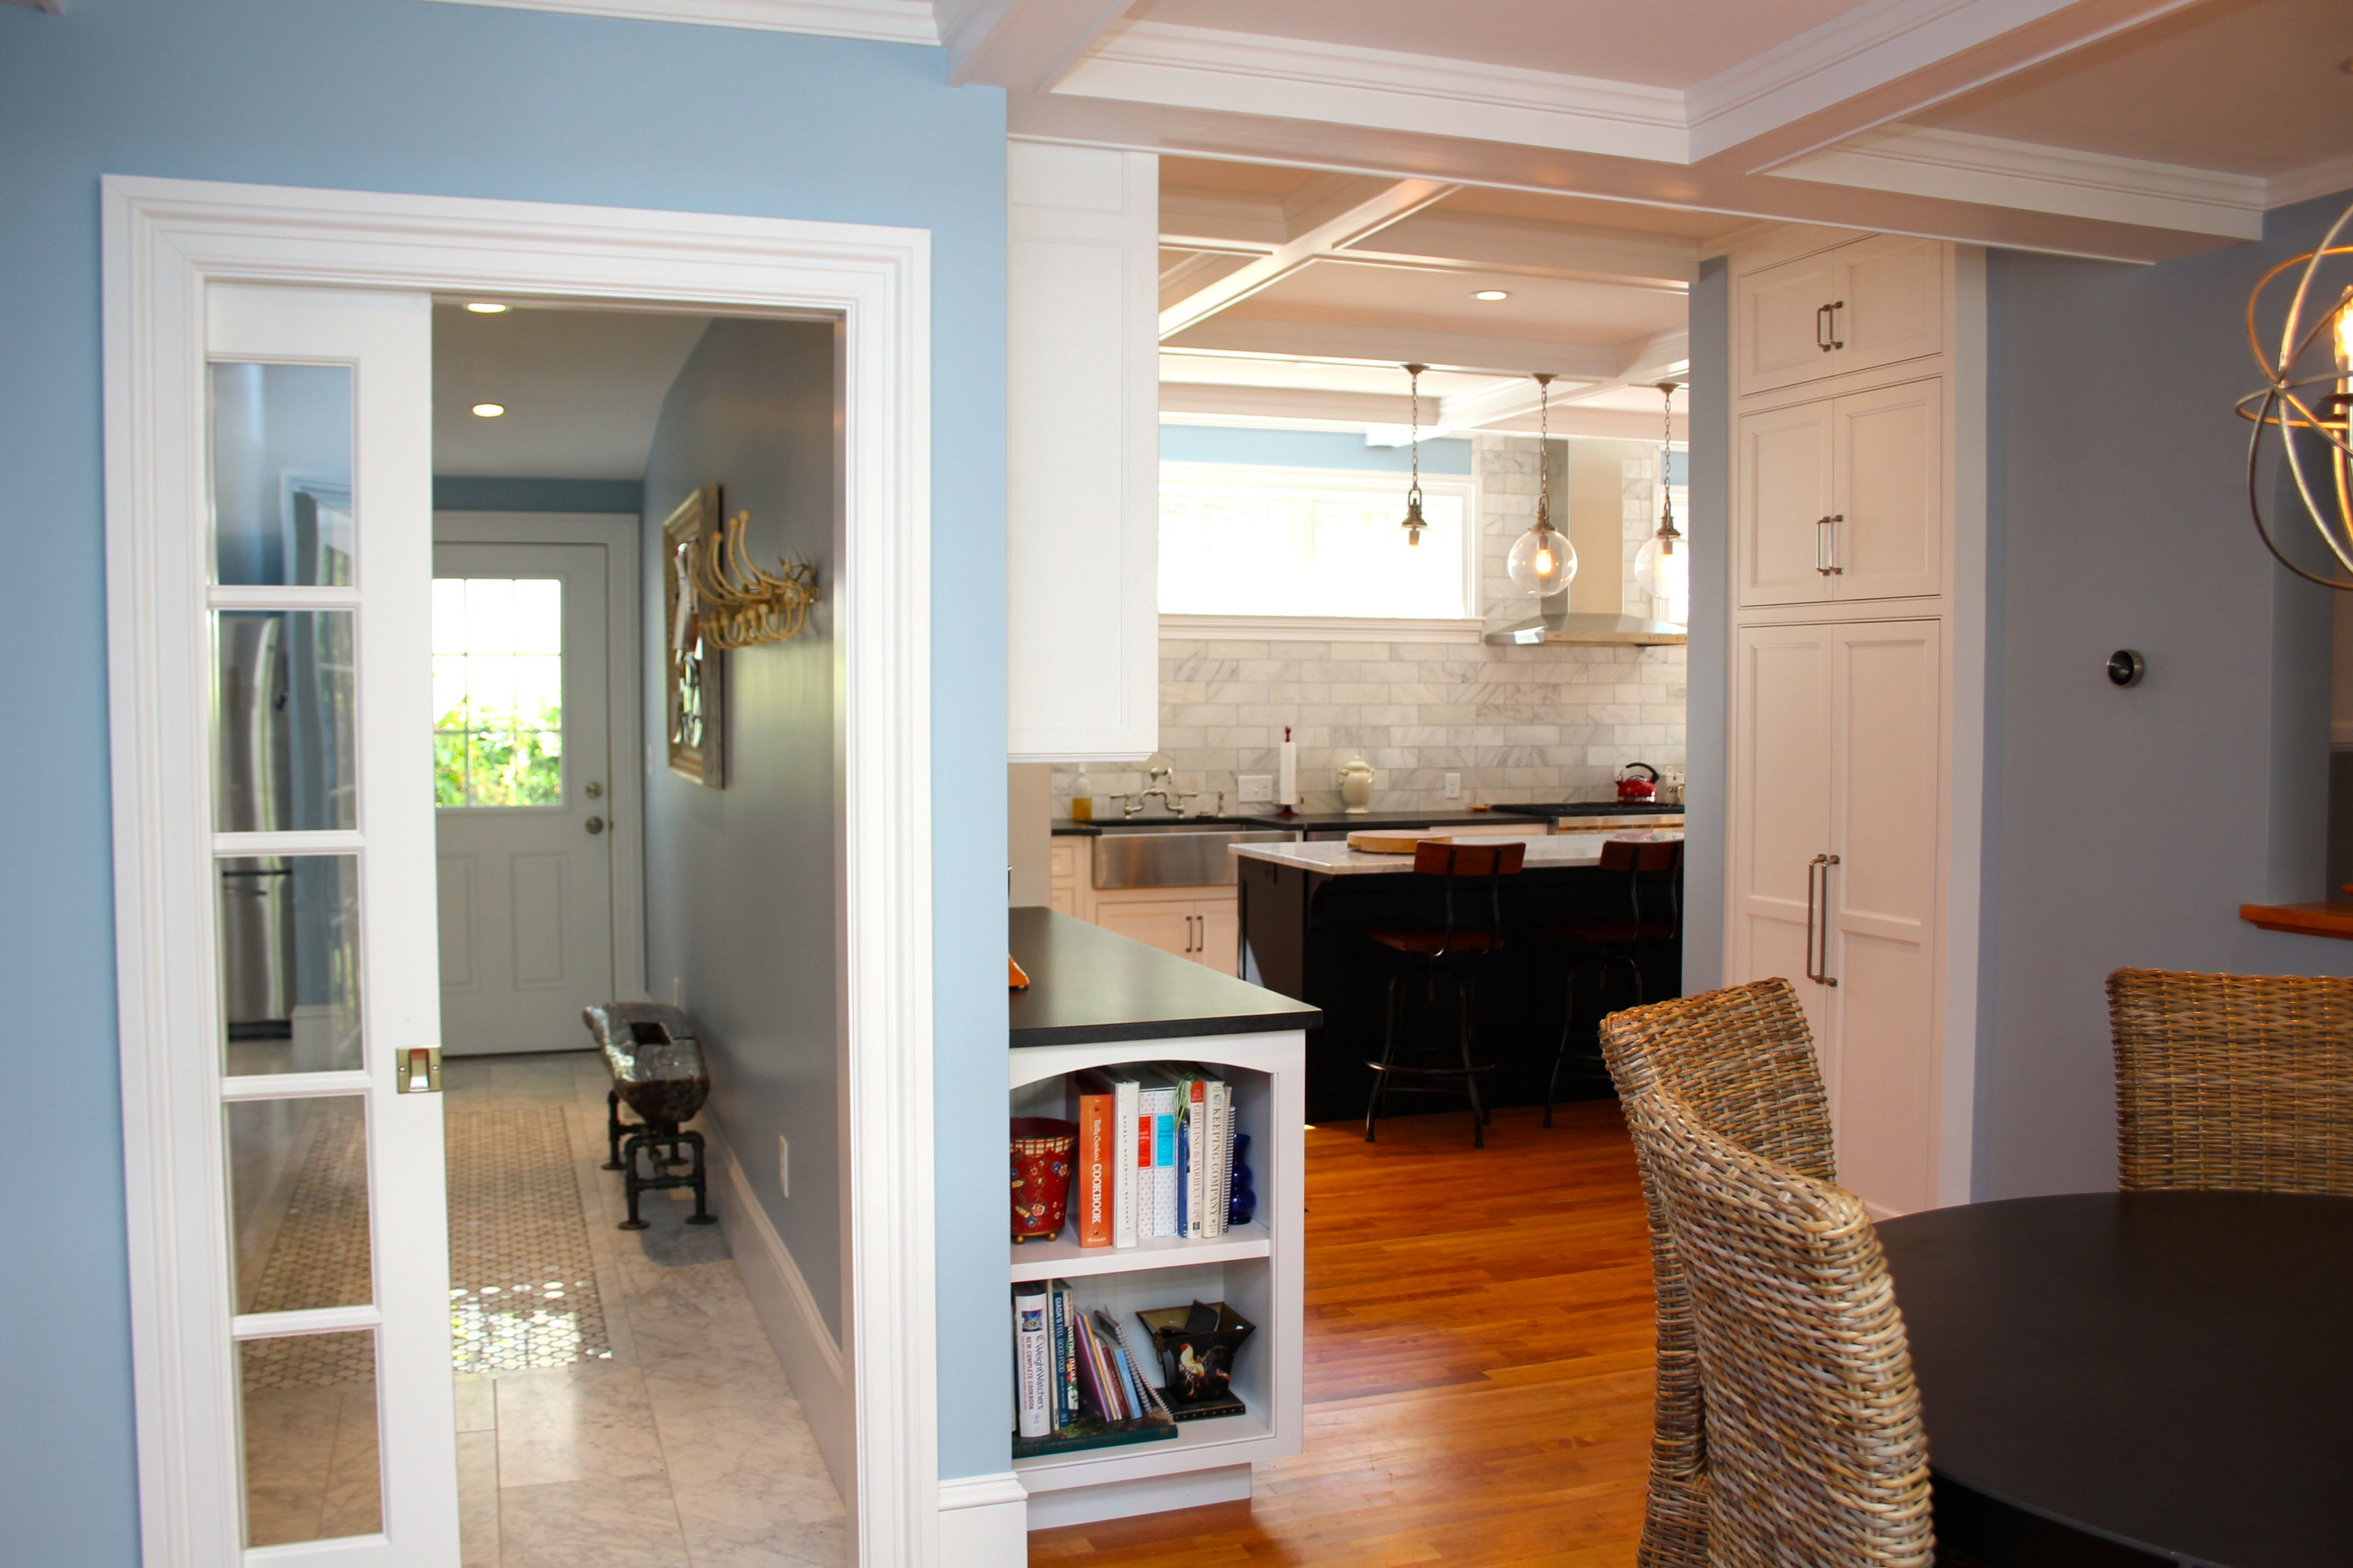 Country Home Kitchen and Entry Renovation